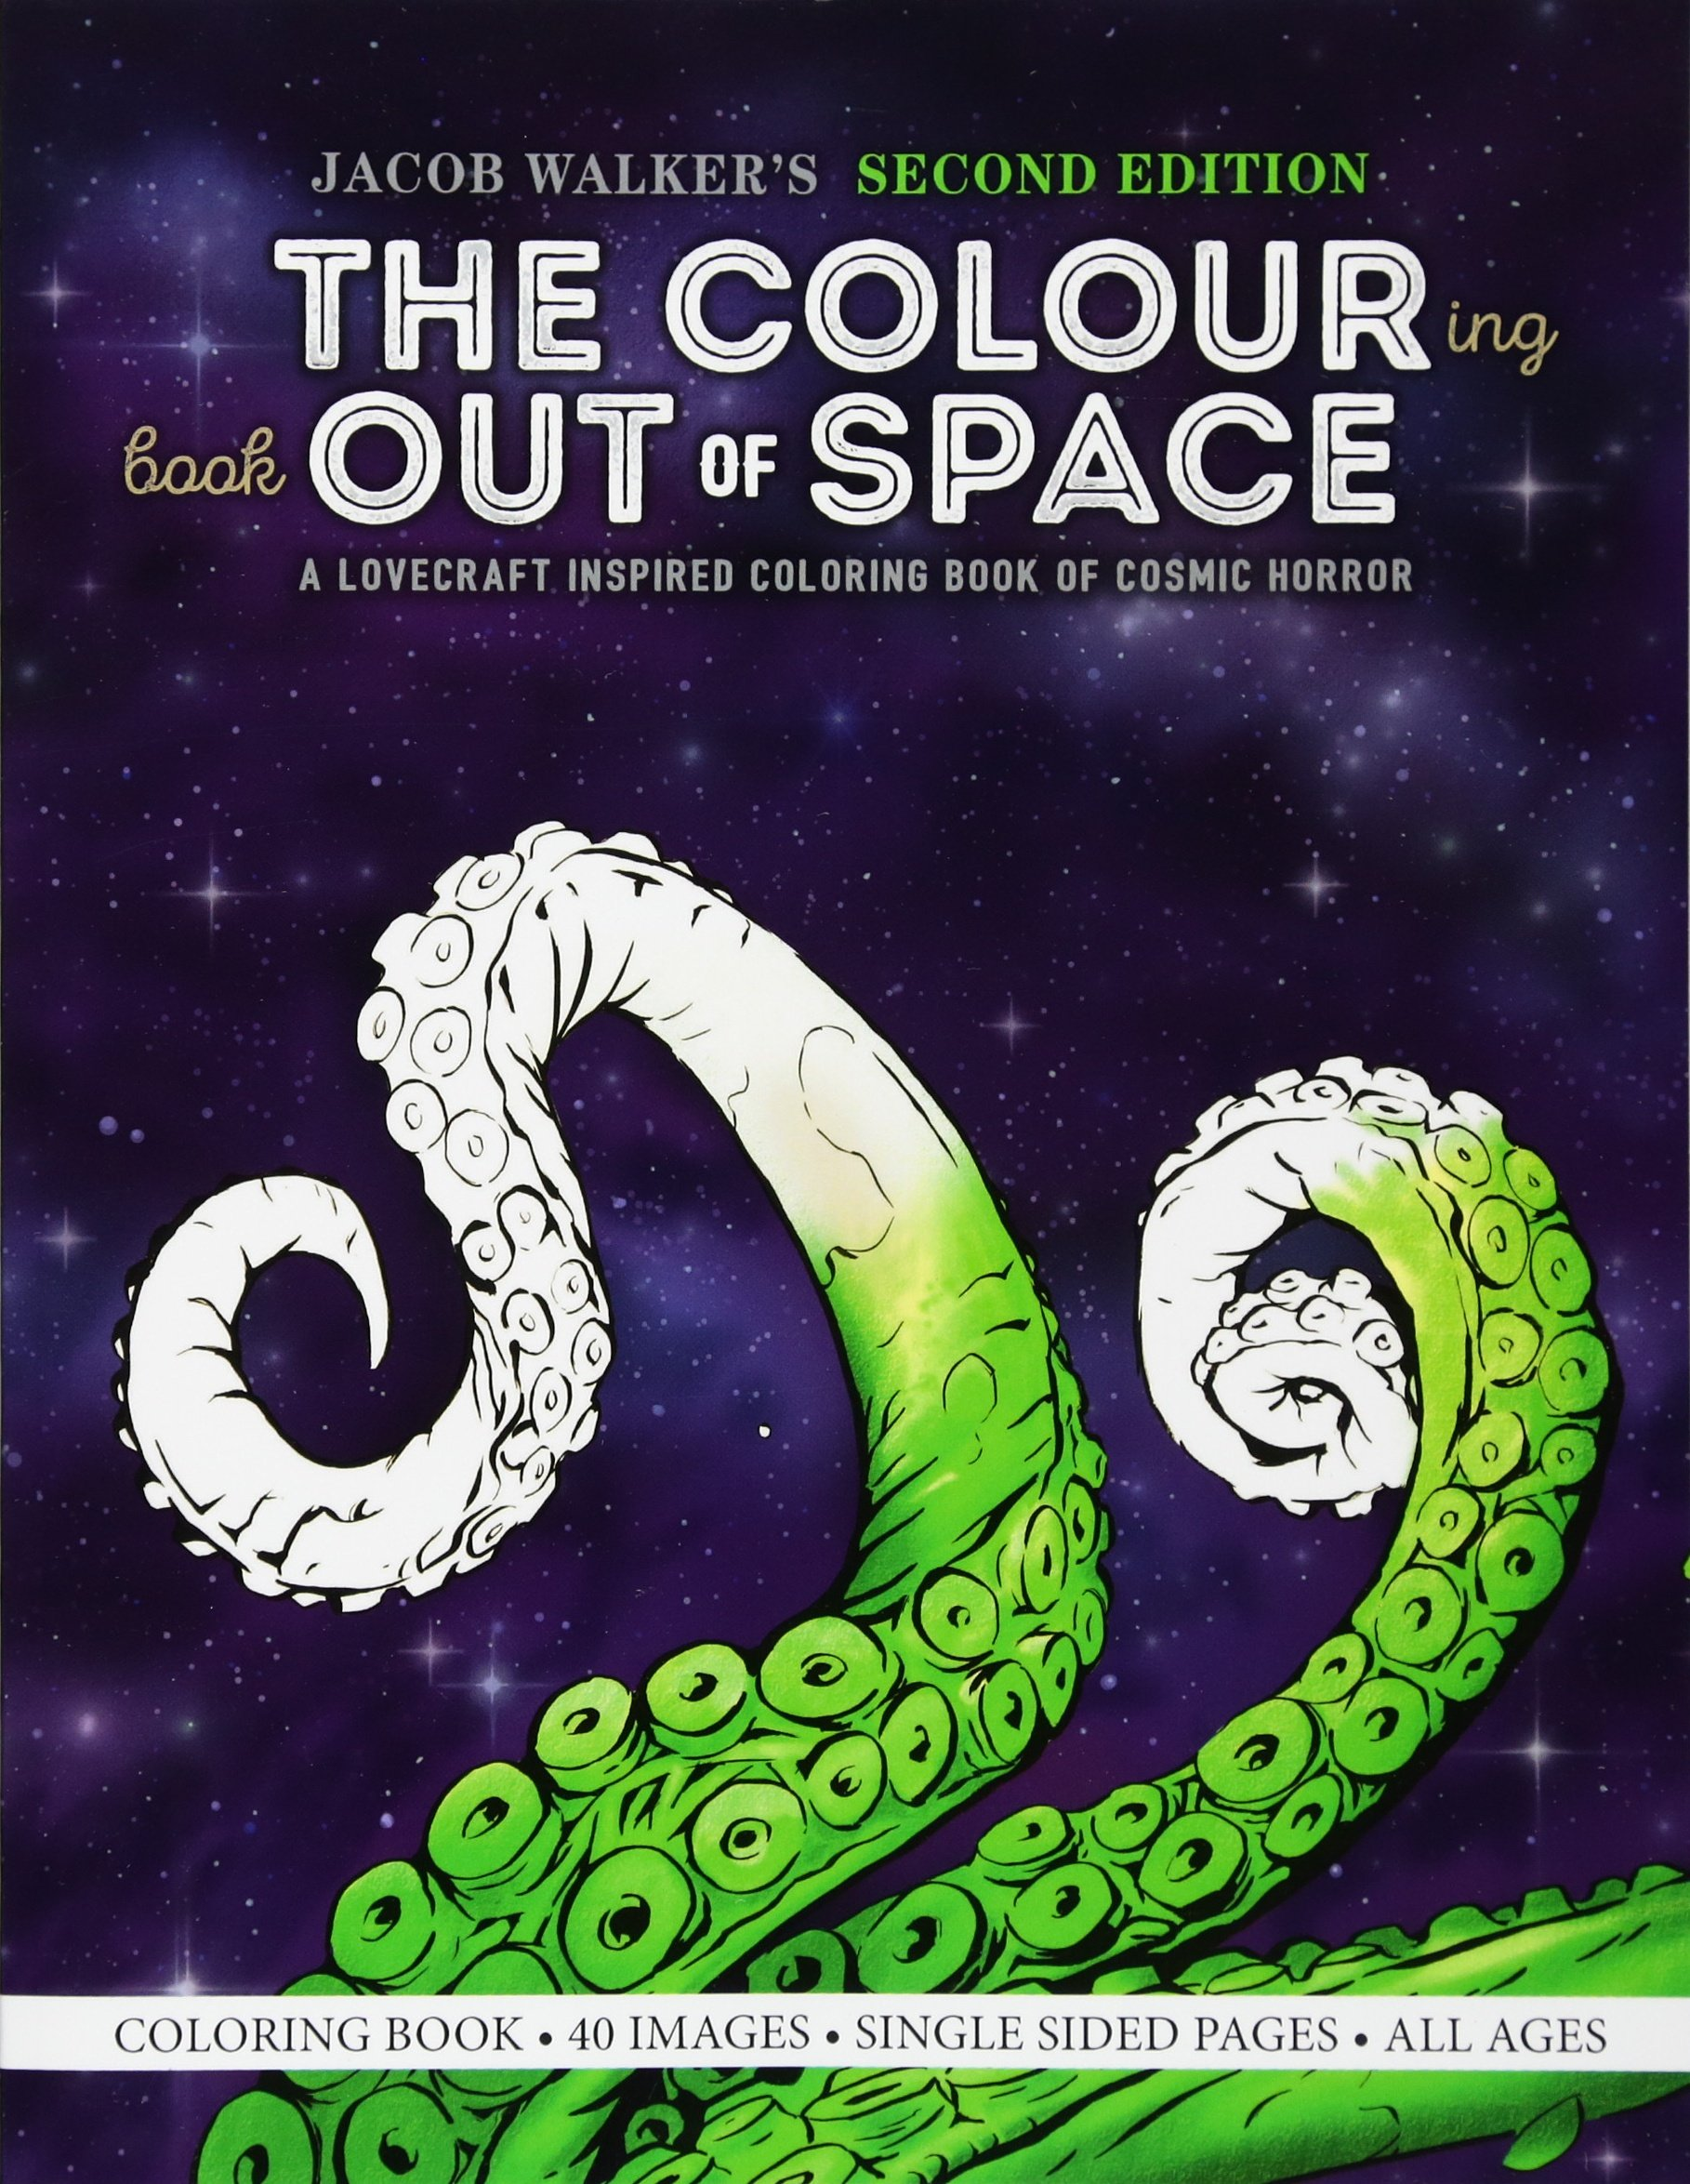 Amazon.com: The Colouring Book Out of Space: A Lovecraft Inspired ...